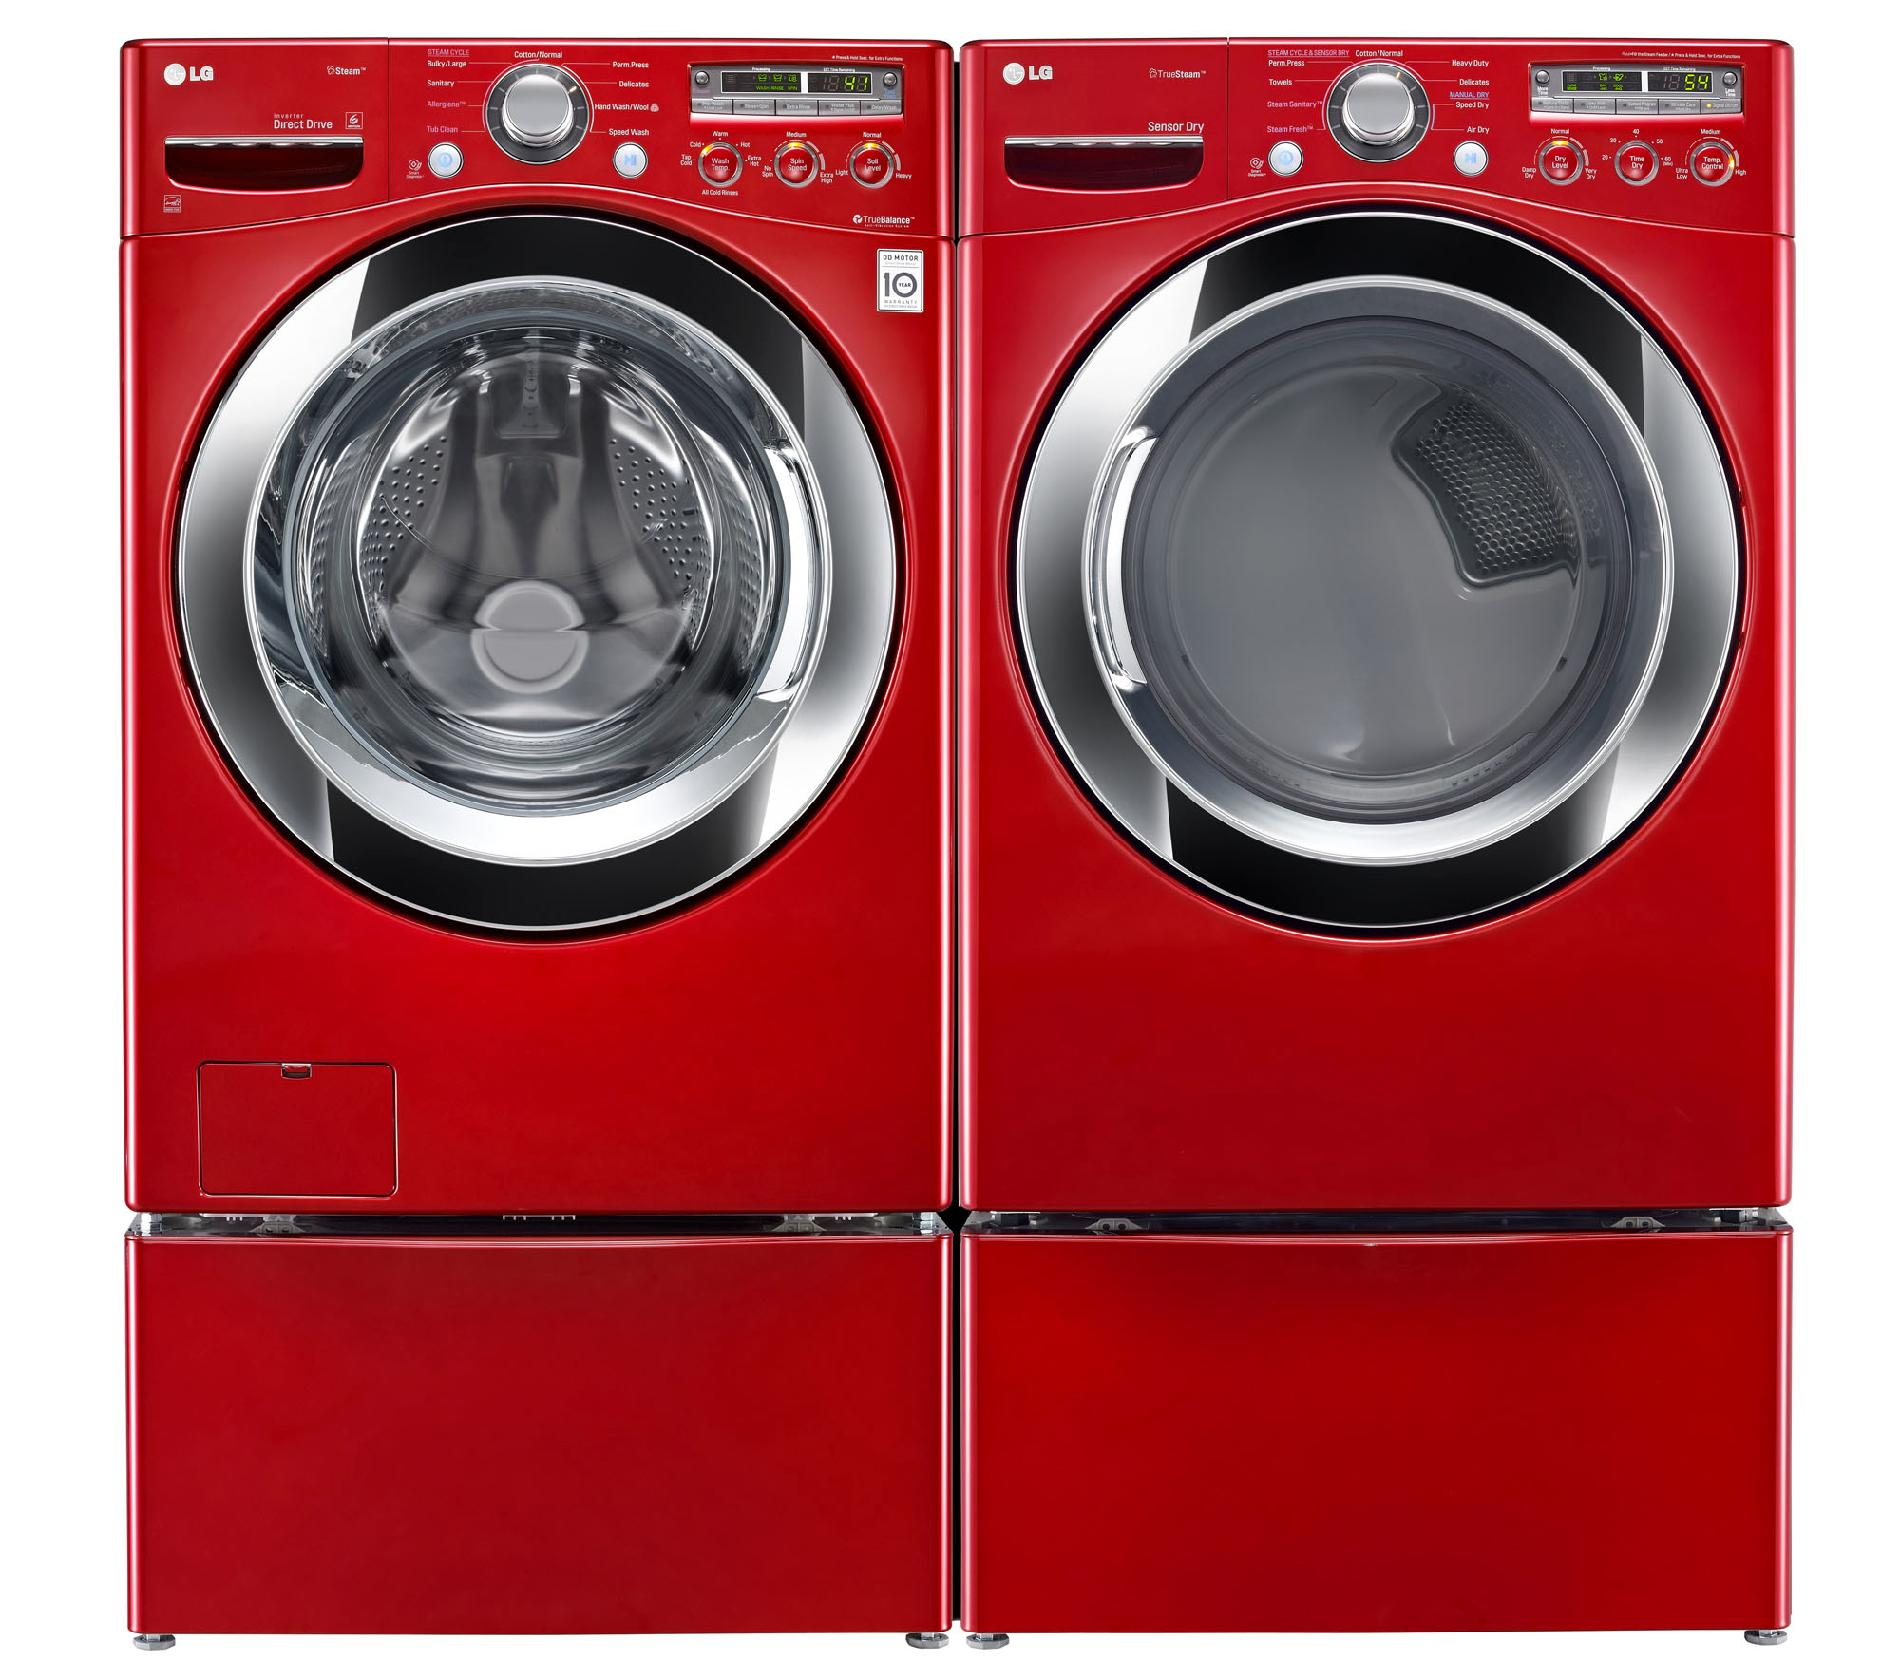 LG 4.0 cu. ft. Front-Load Washer w/ Steam™ Technology - Wild Cherry Red